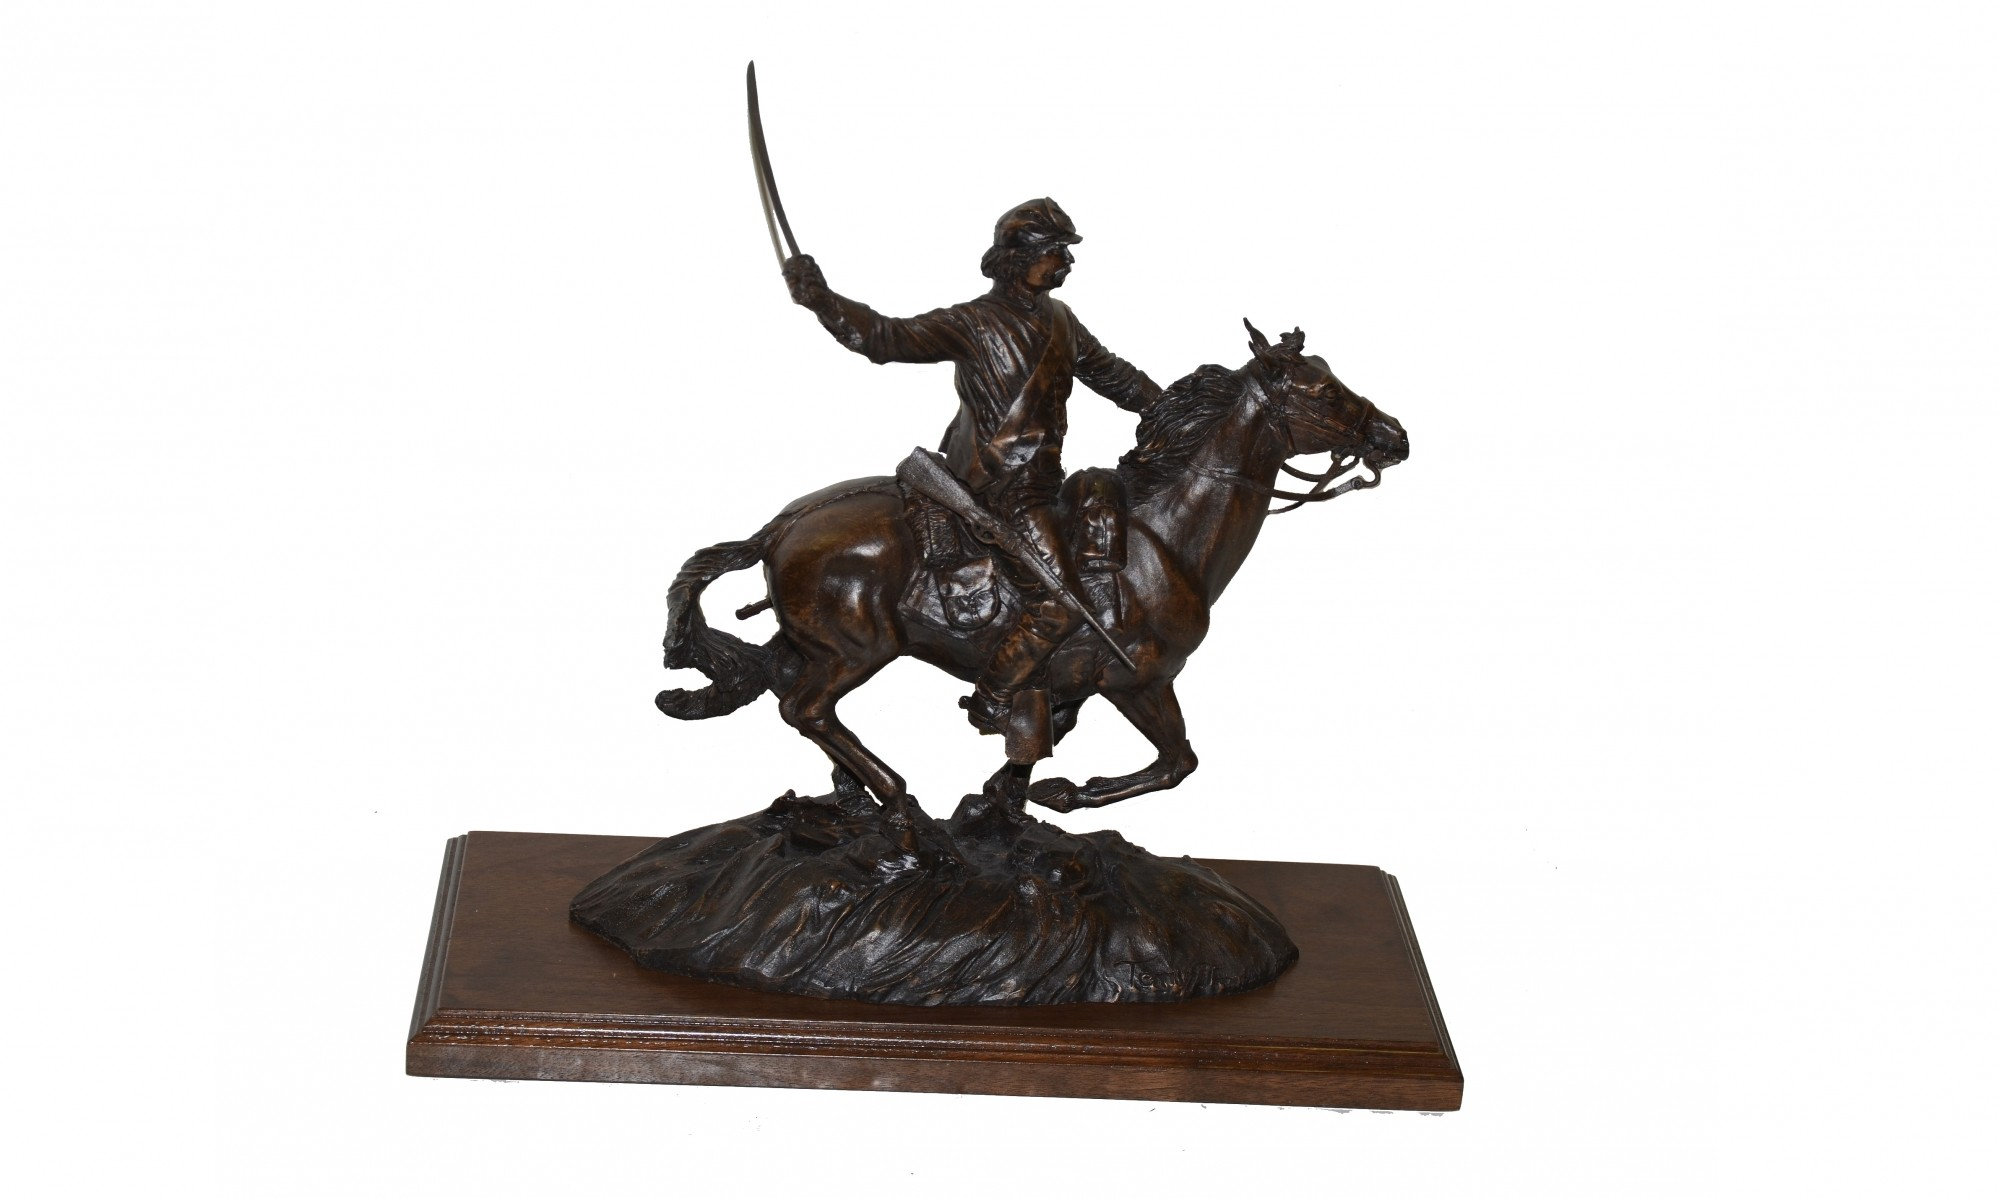 STATUE OF 'THE UNION CAVALRYMAN' BY TERRY JONES